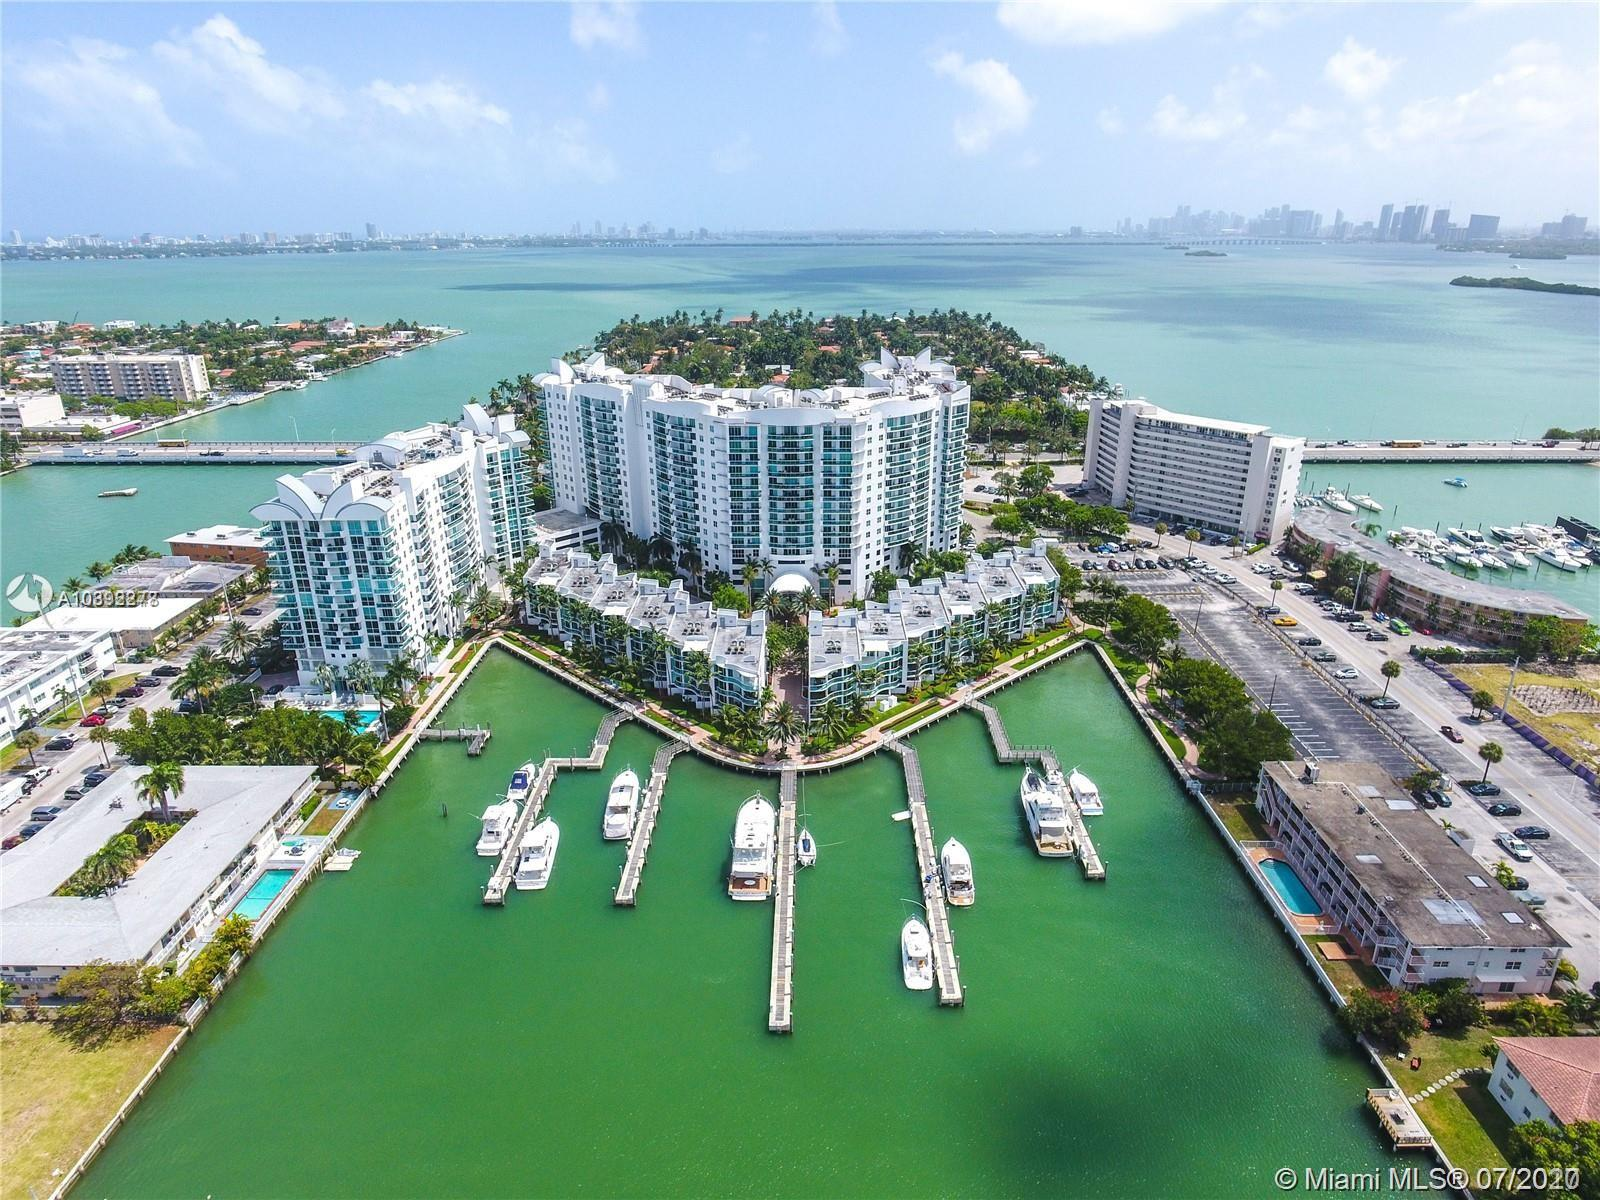 Direct water views from high floor in desirable gated community. Floor to ceiling glass doors and windows overlooking the Miami waters. Gated community with 24 hours security, valet parking, community boat docks, boardwalk by the bay, 2 pools, fitness center, clubhouse and more. Close to restaurants, supermarket and major highways. Less than a mile from the beach!